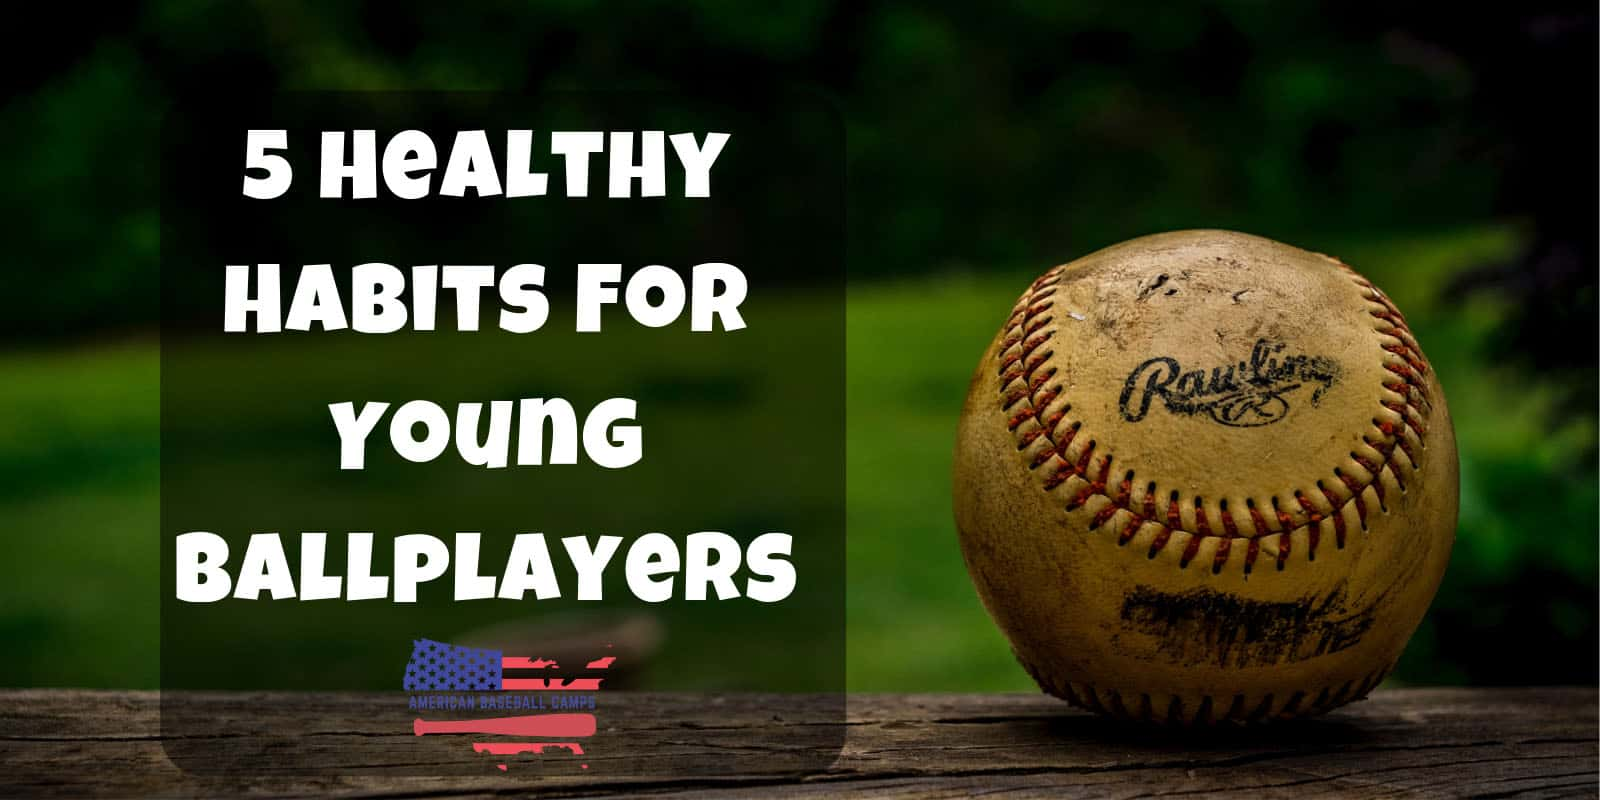 American Baseball Camps — 5 Healthy Habits For Young Ballplayers